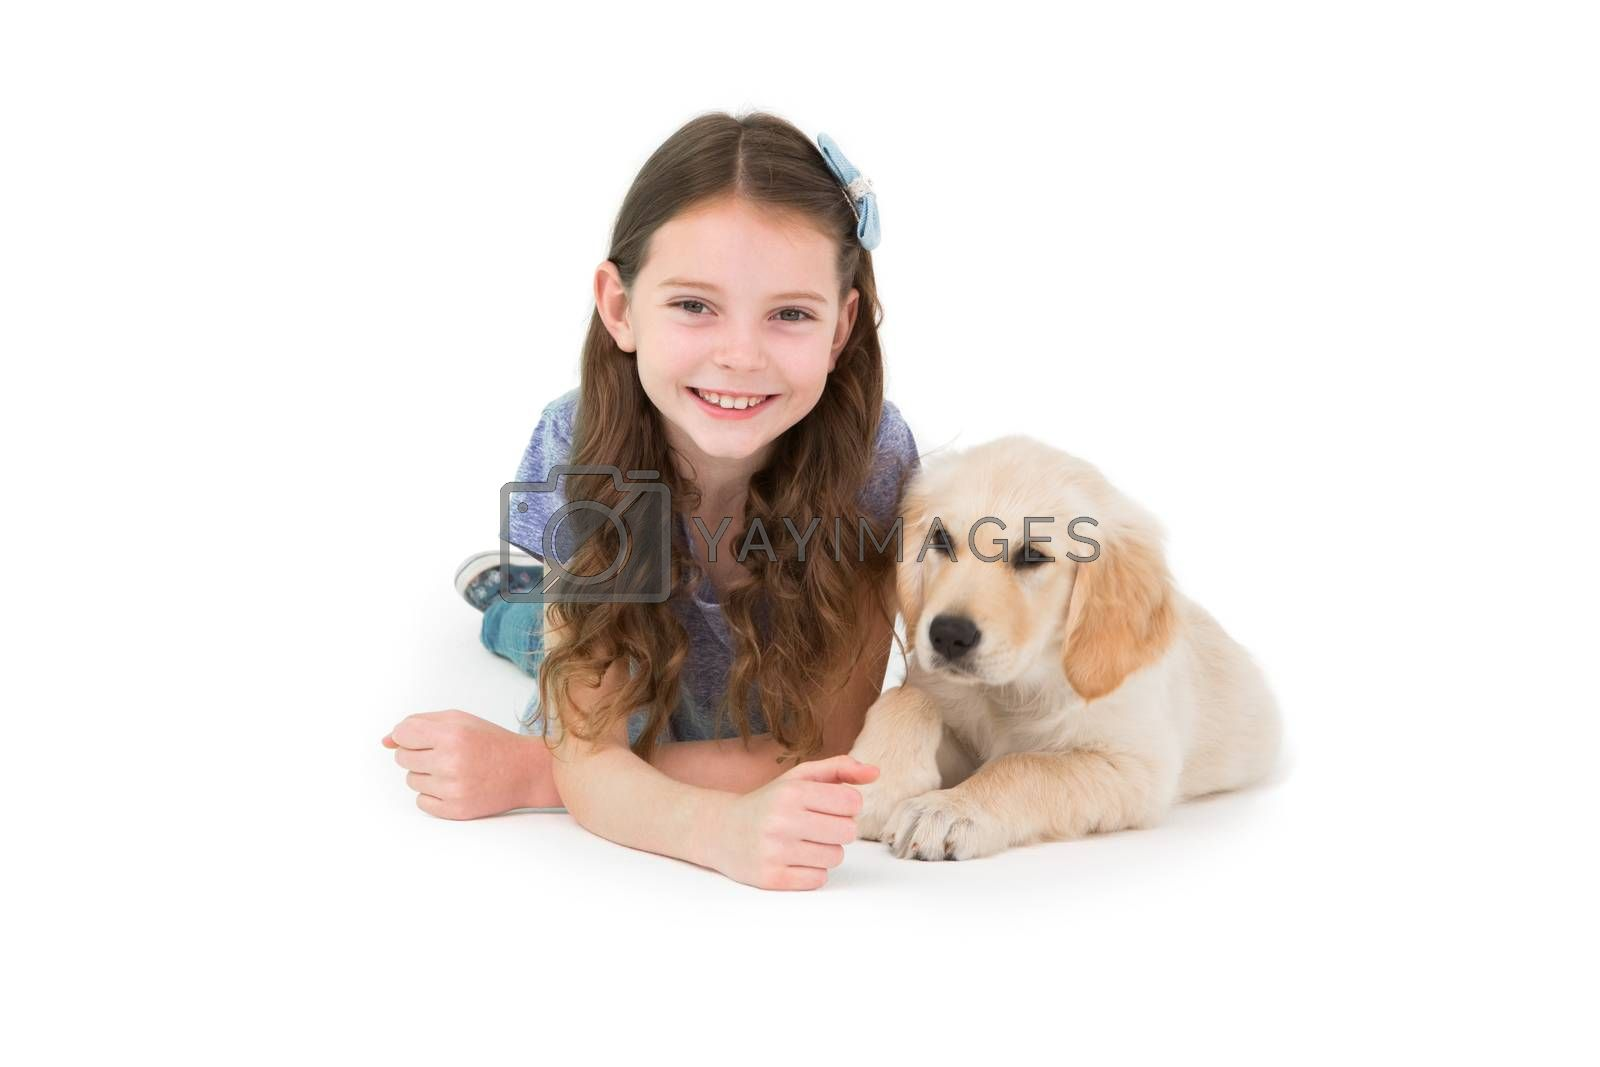 Lying little girl with a dog on white background